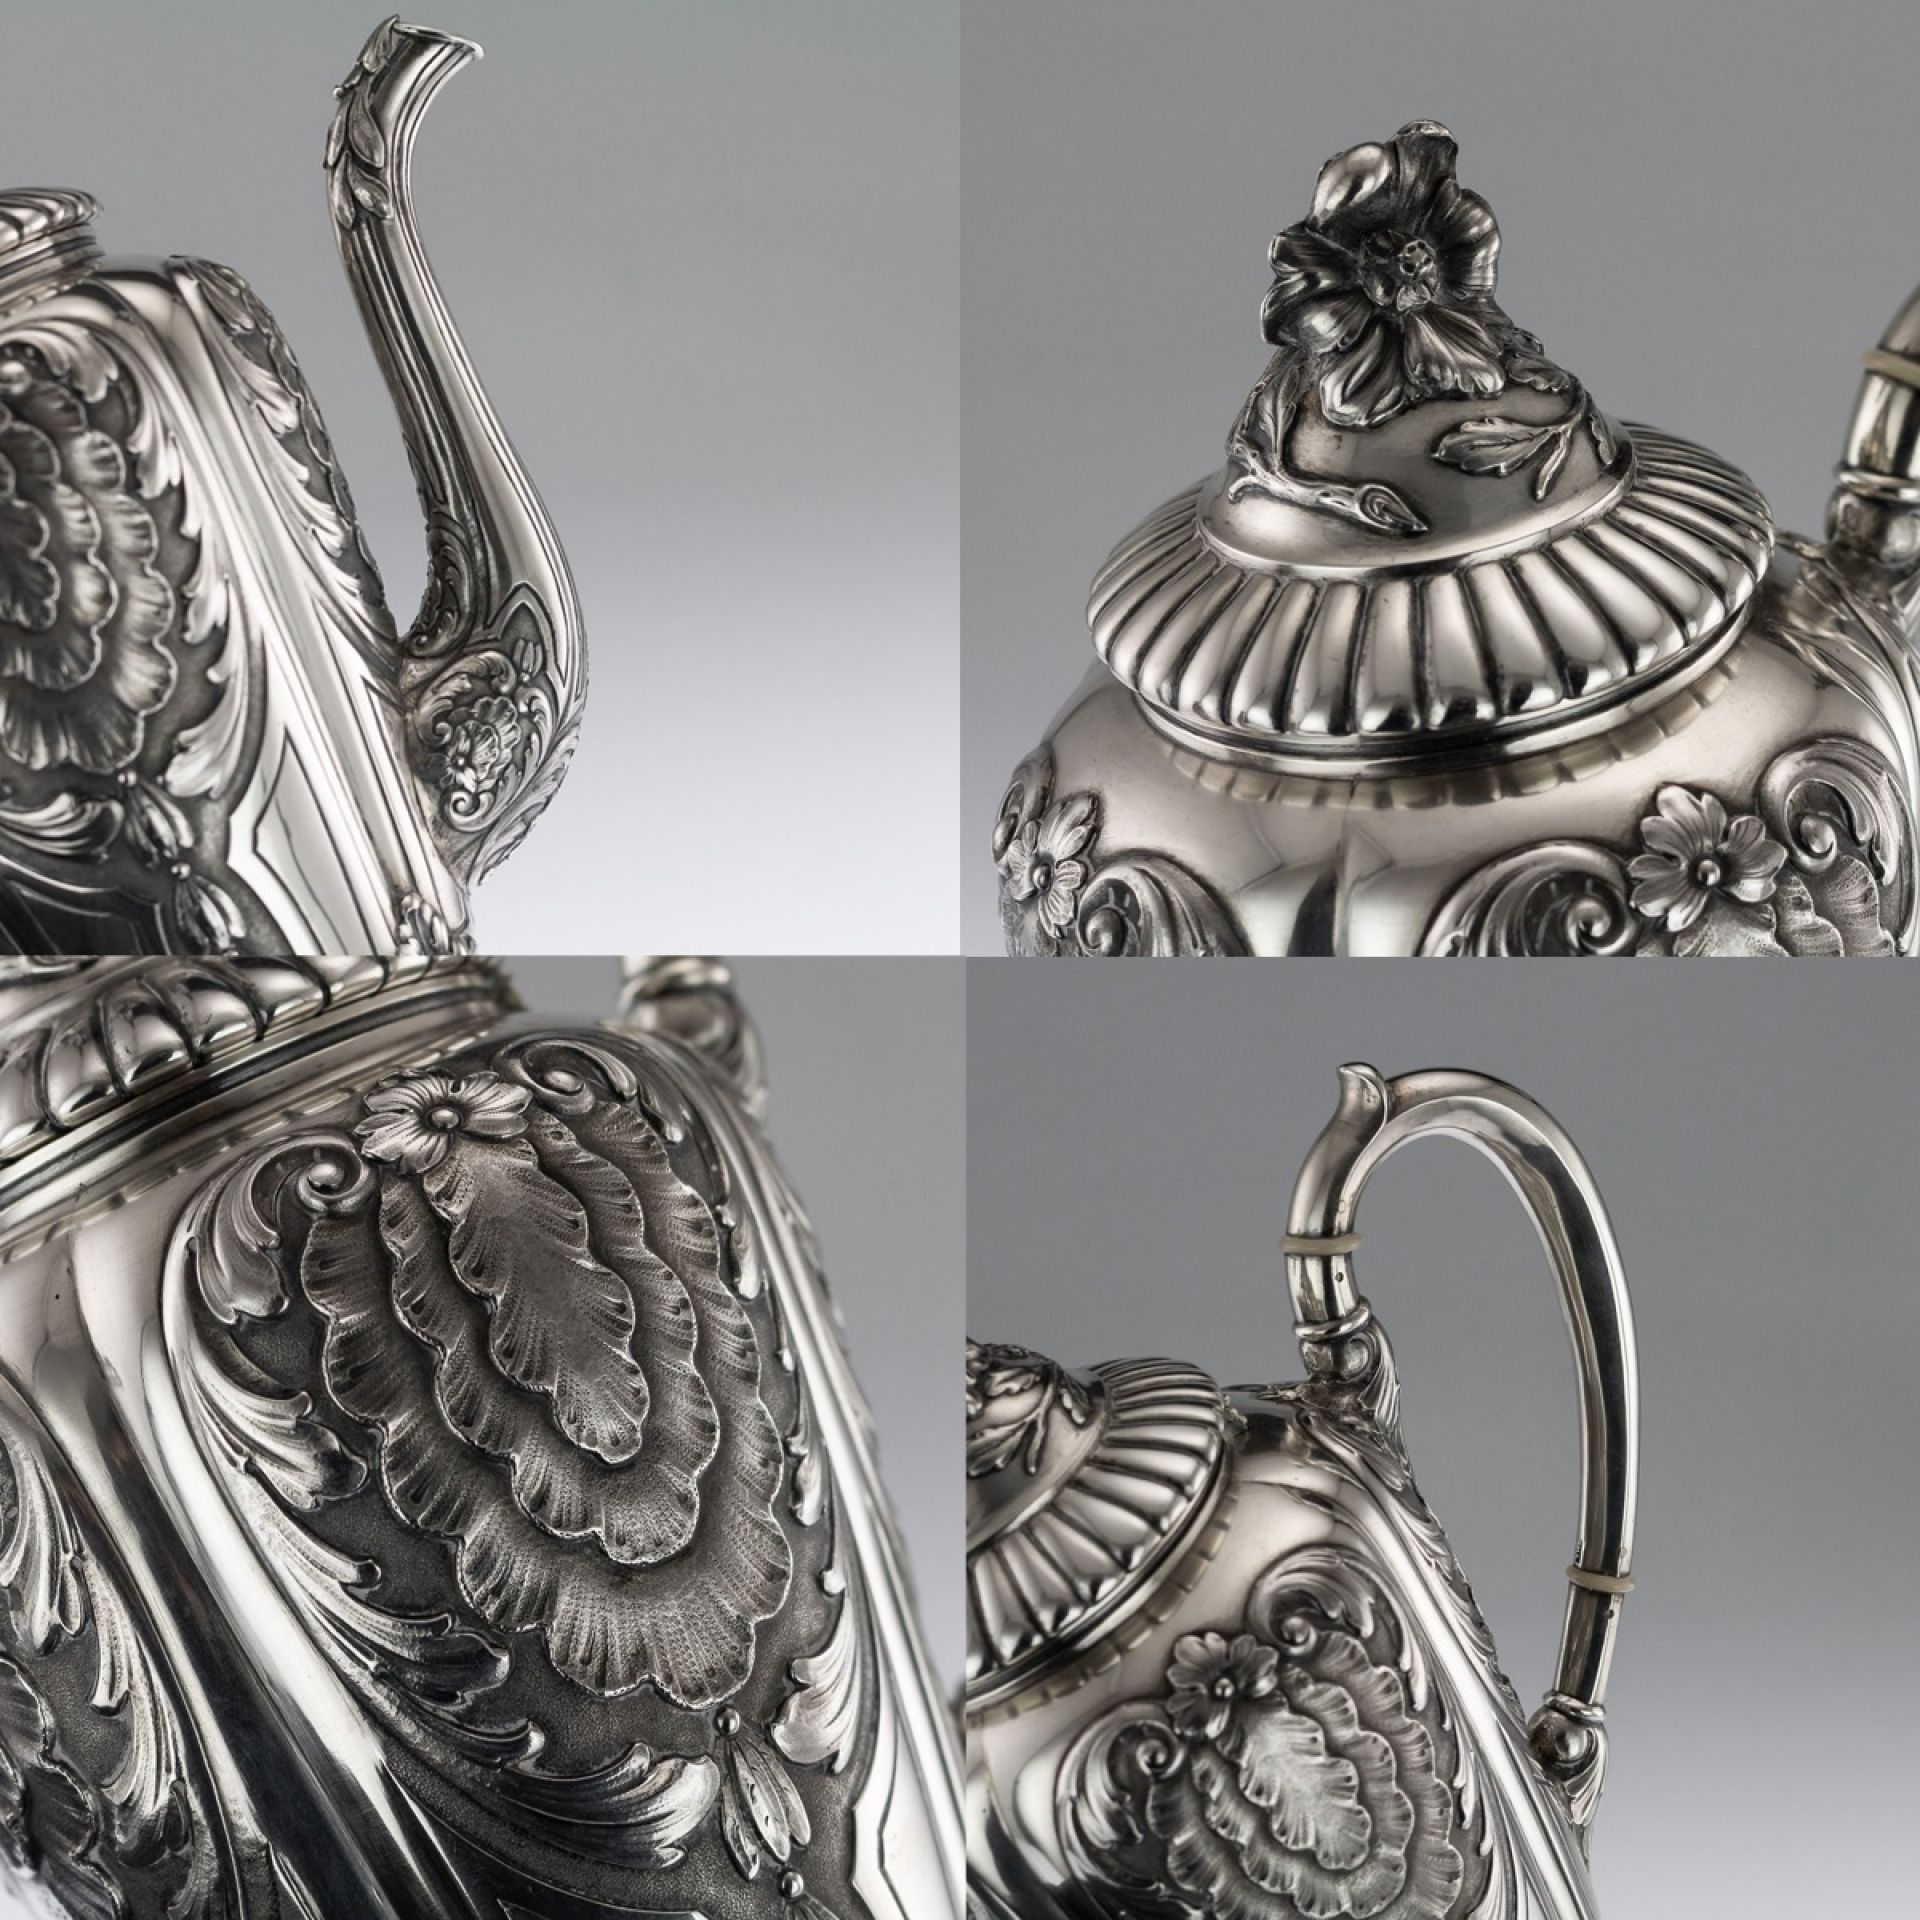 ANTIQUE 19thC IMPERIAL RUSSIAN SOLID SILVER TEA & COFFEE SET, 4th ARTEL c.1890